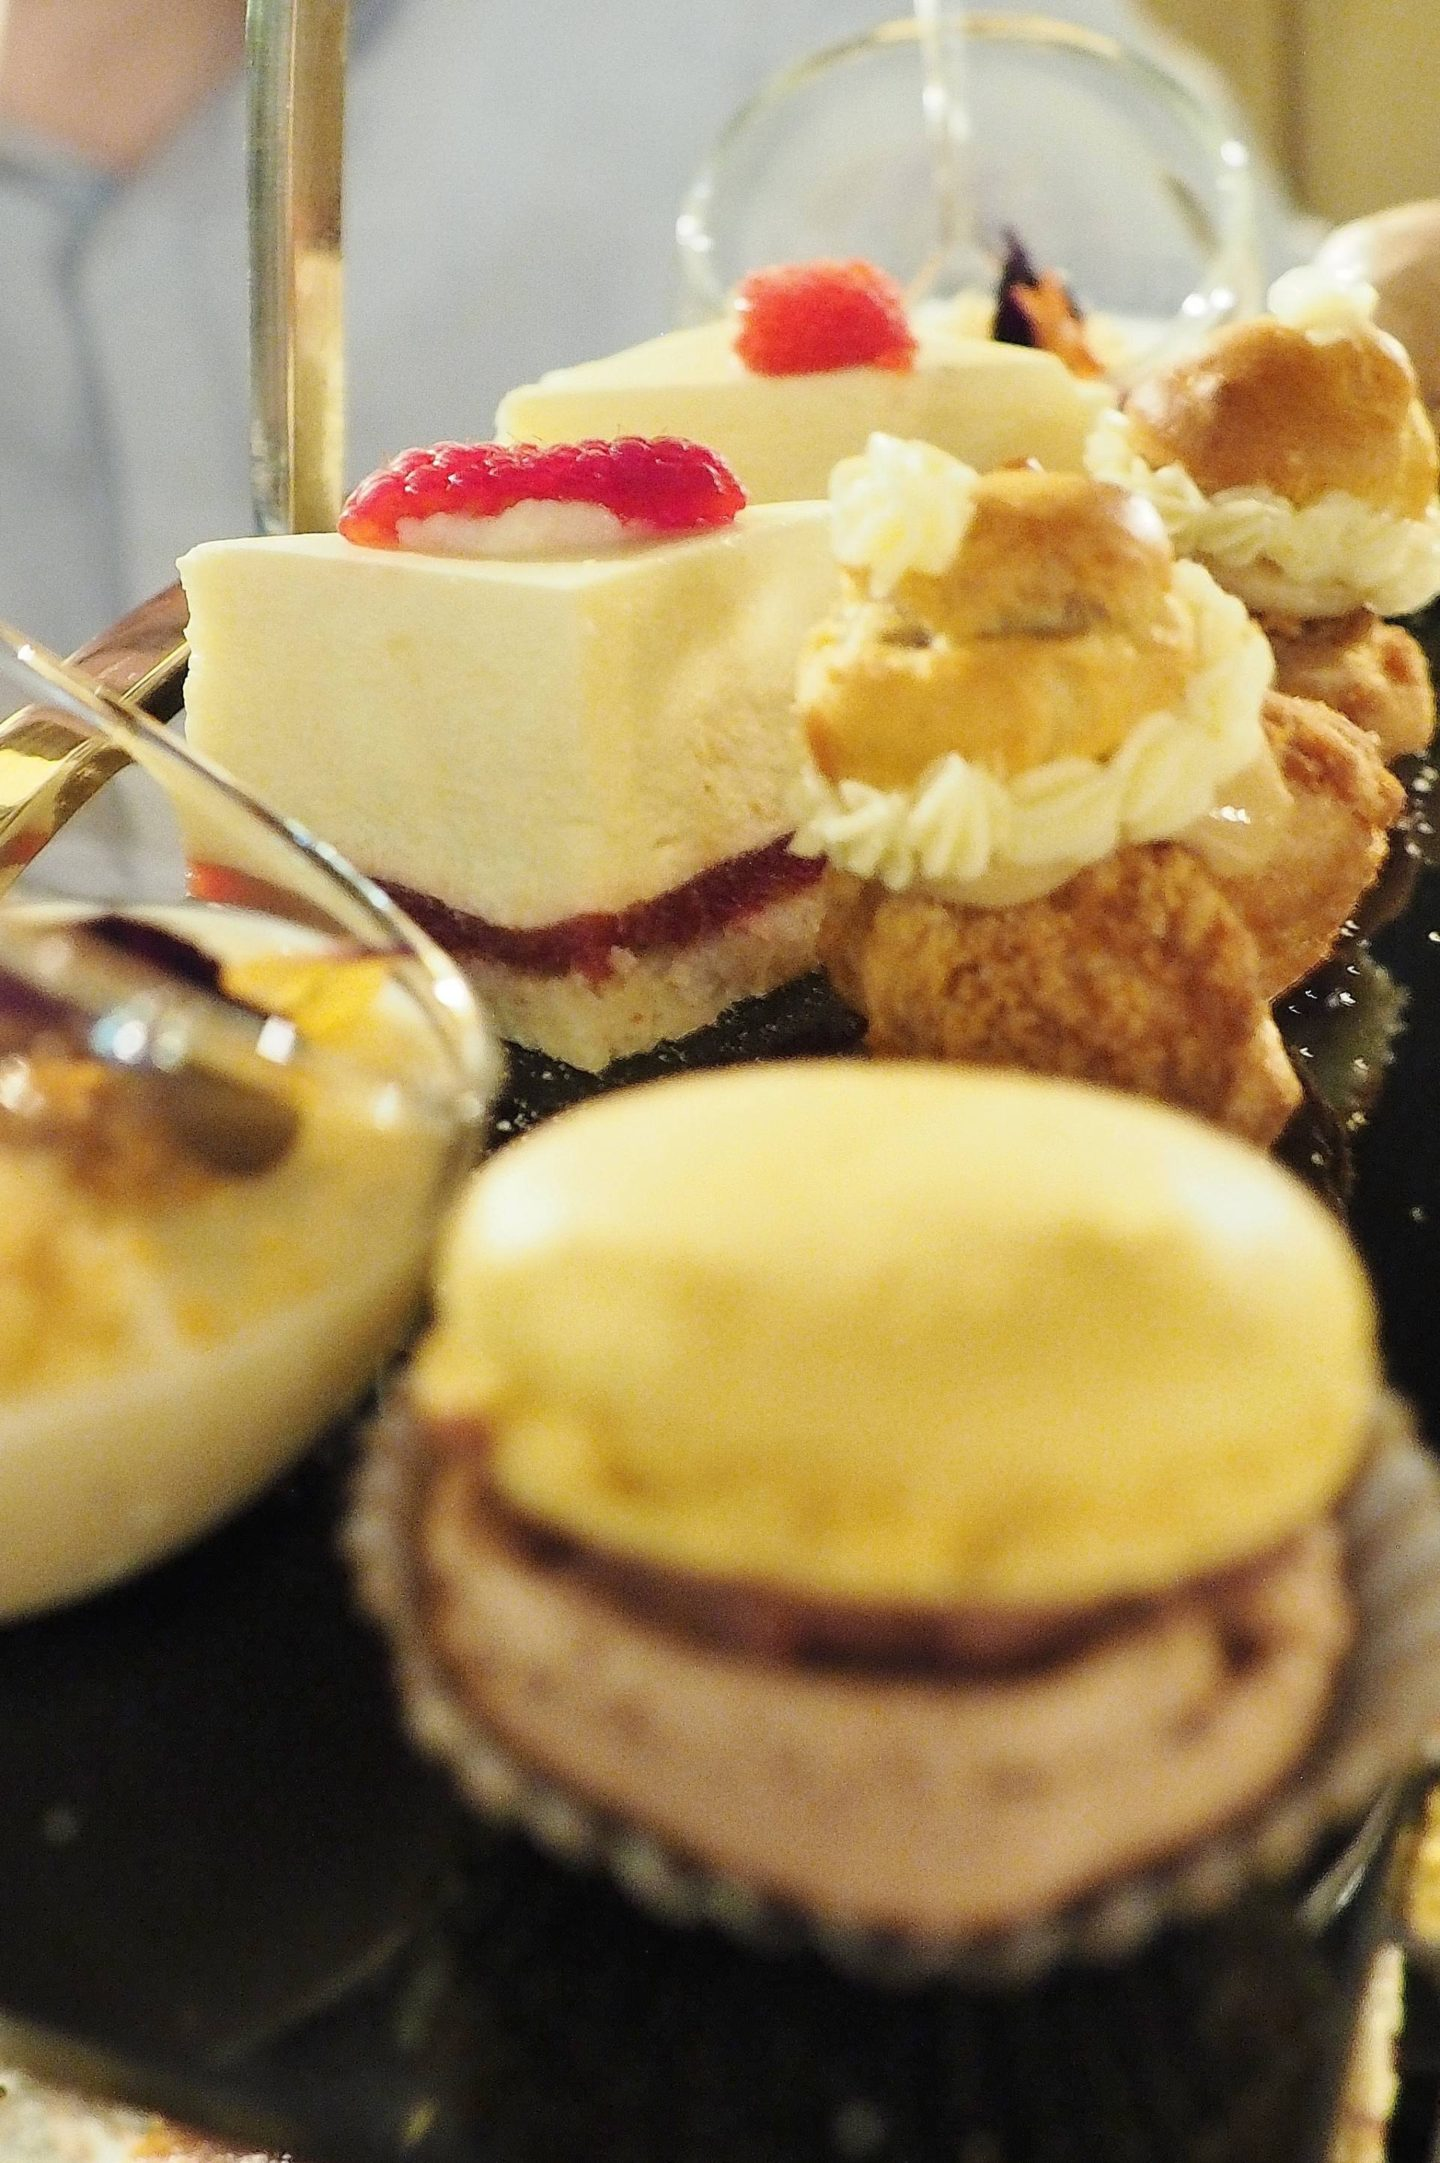 Emma Victoria Stokes Edgbaston Boutique Afternoon Tea Ginger valrhona dark chocolate macaroon Rhubarb and vanilla panna cotta passion fruit and raspberry delice coffee and caramel profiteroles